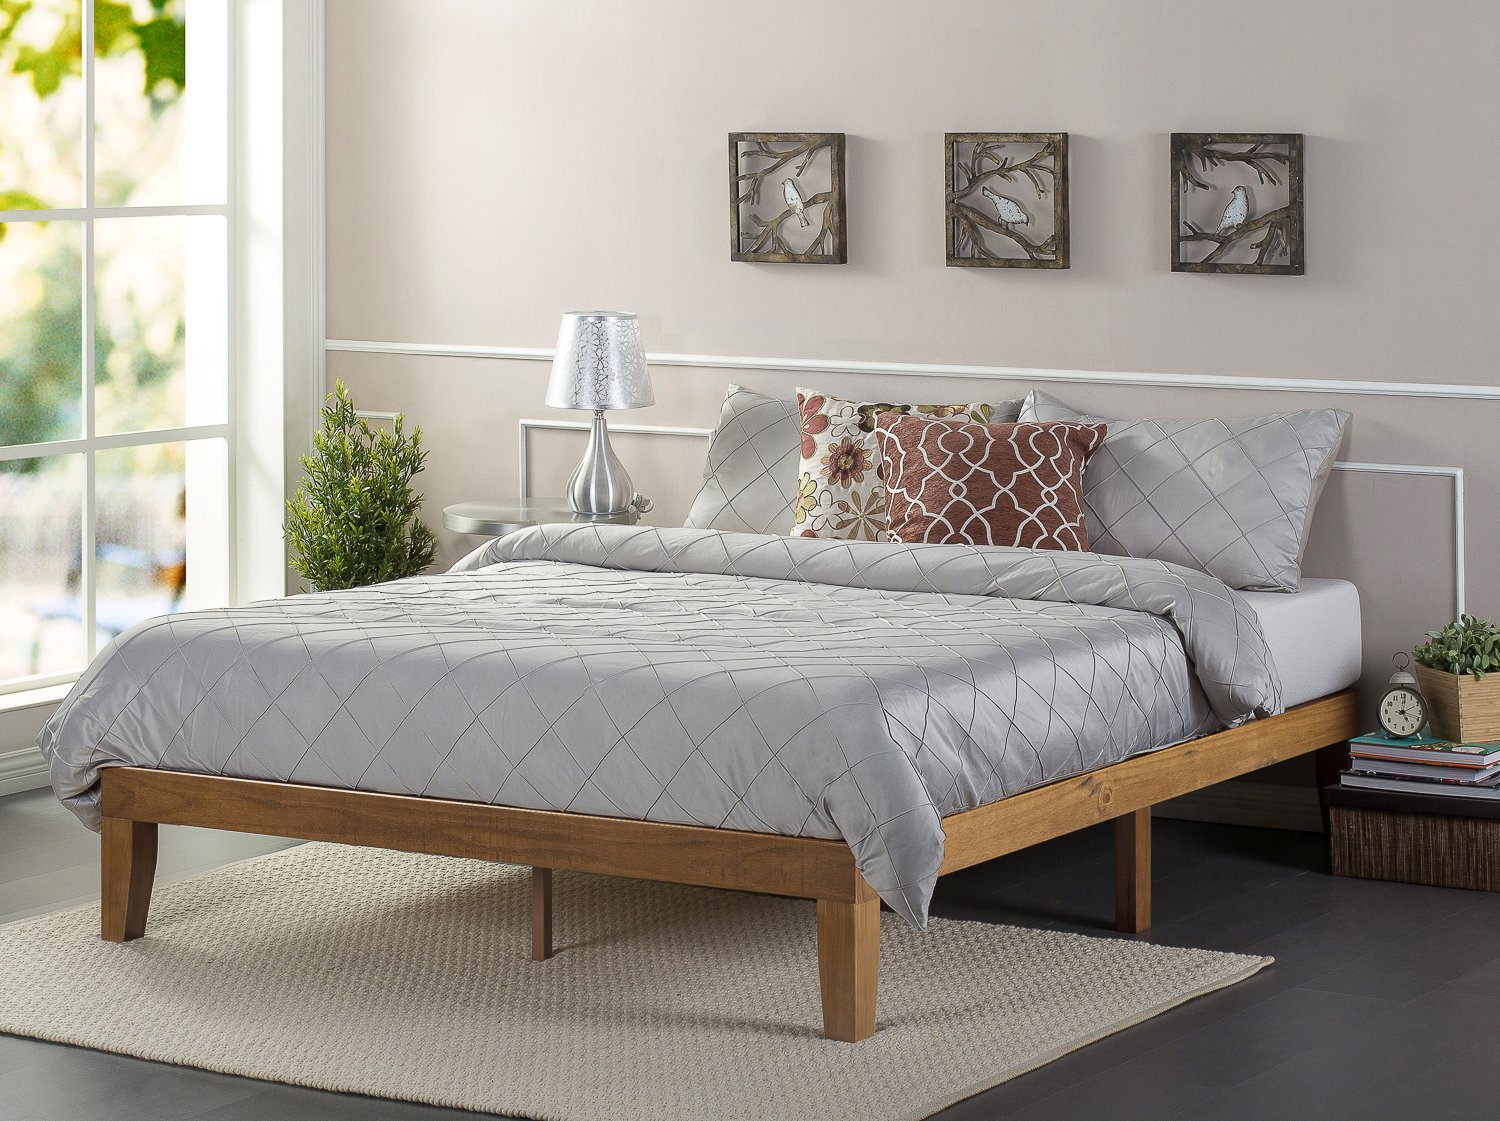 Zinus Alexia 12 Inch Wood Platform Bed / No Box Spring Needed / Wood Slat Support / Rustic Pine Finish, Full by Zinus